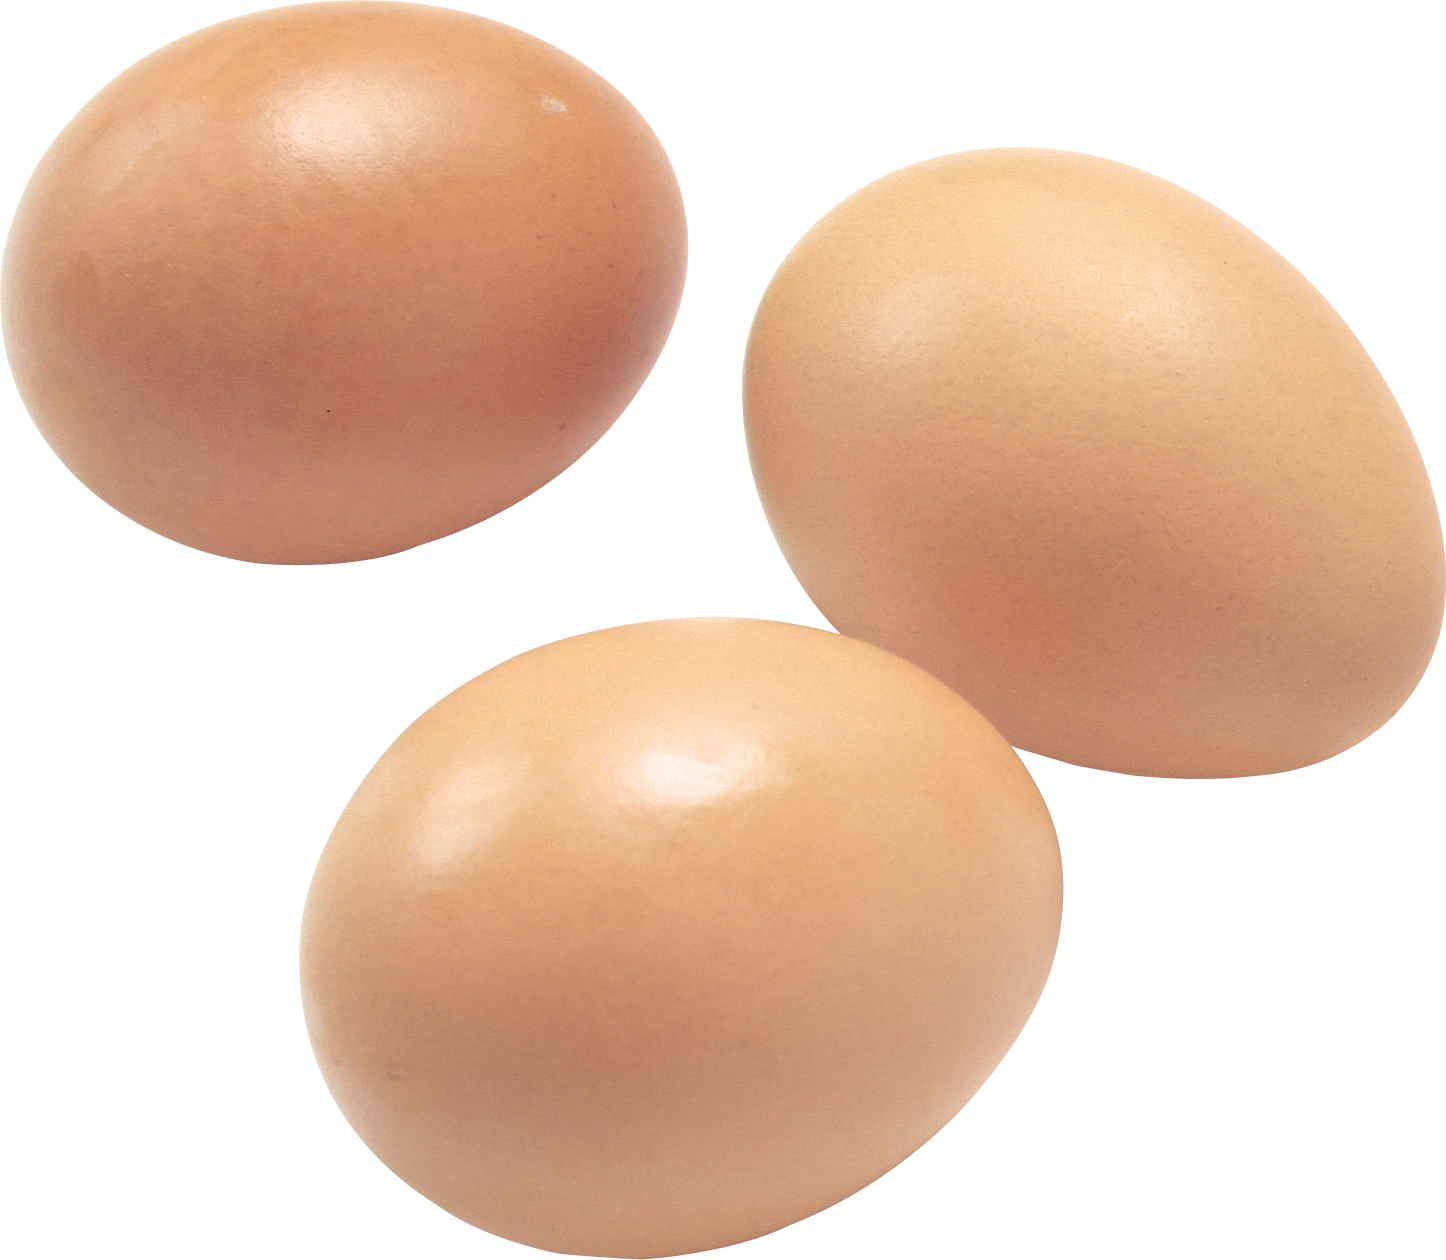 Egg clipart clear background. Eggs png image free